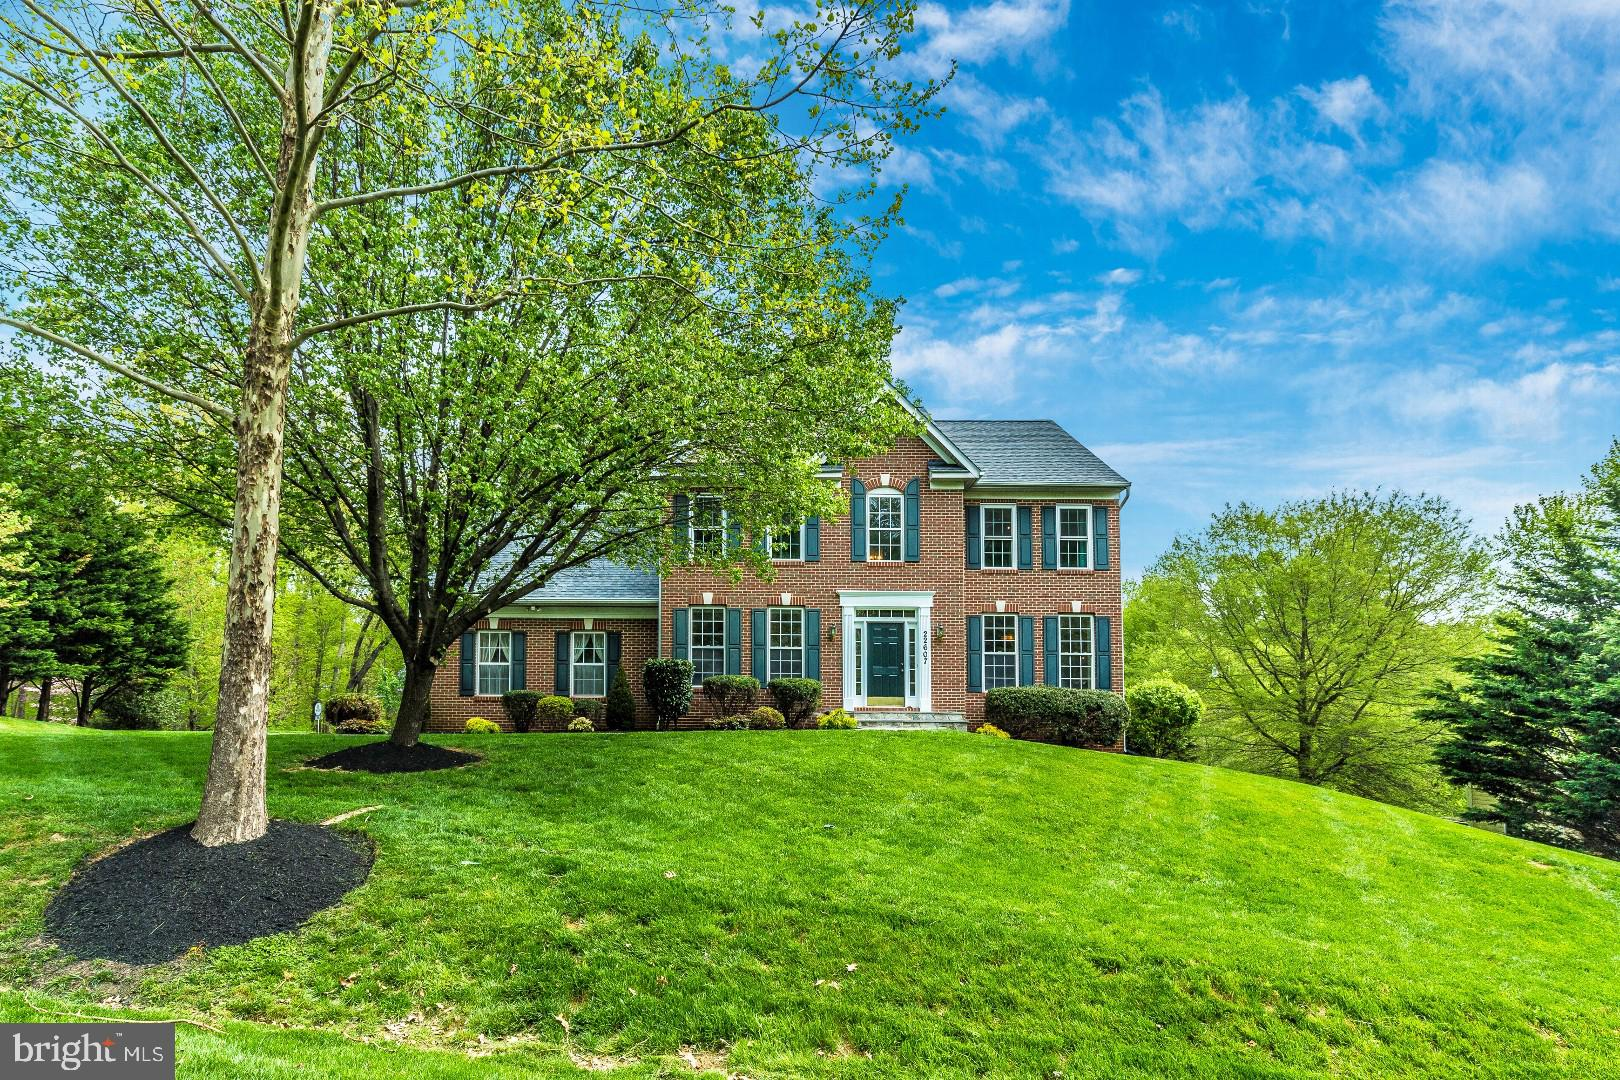 22607 TIMBER CREEK LANE, CLARKSBURG, MD 20871